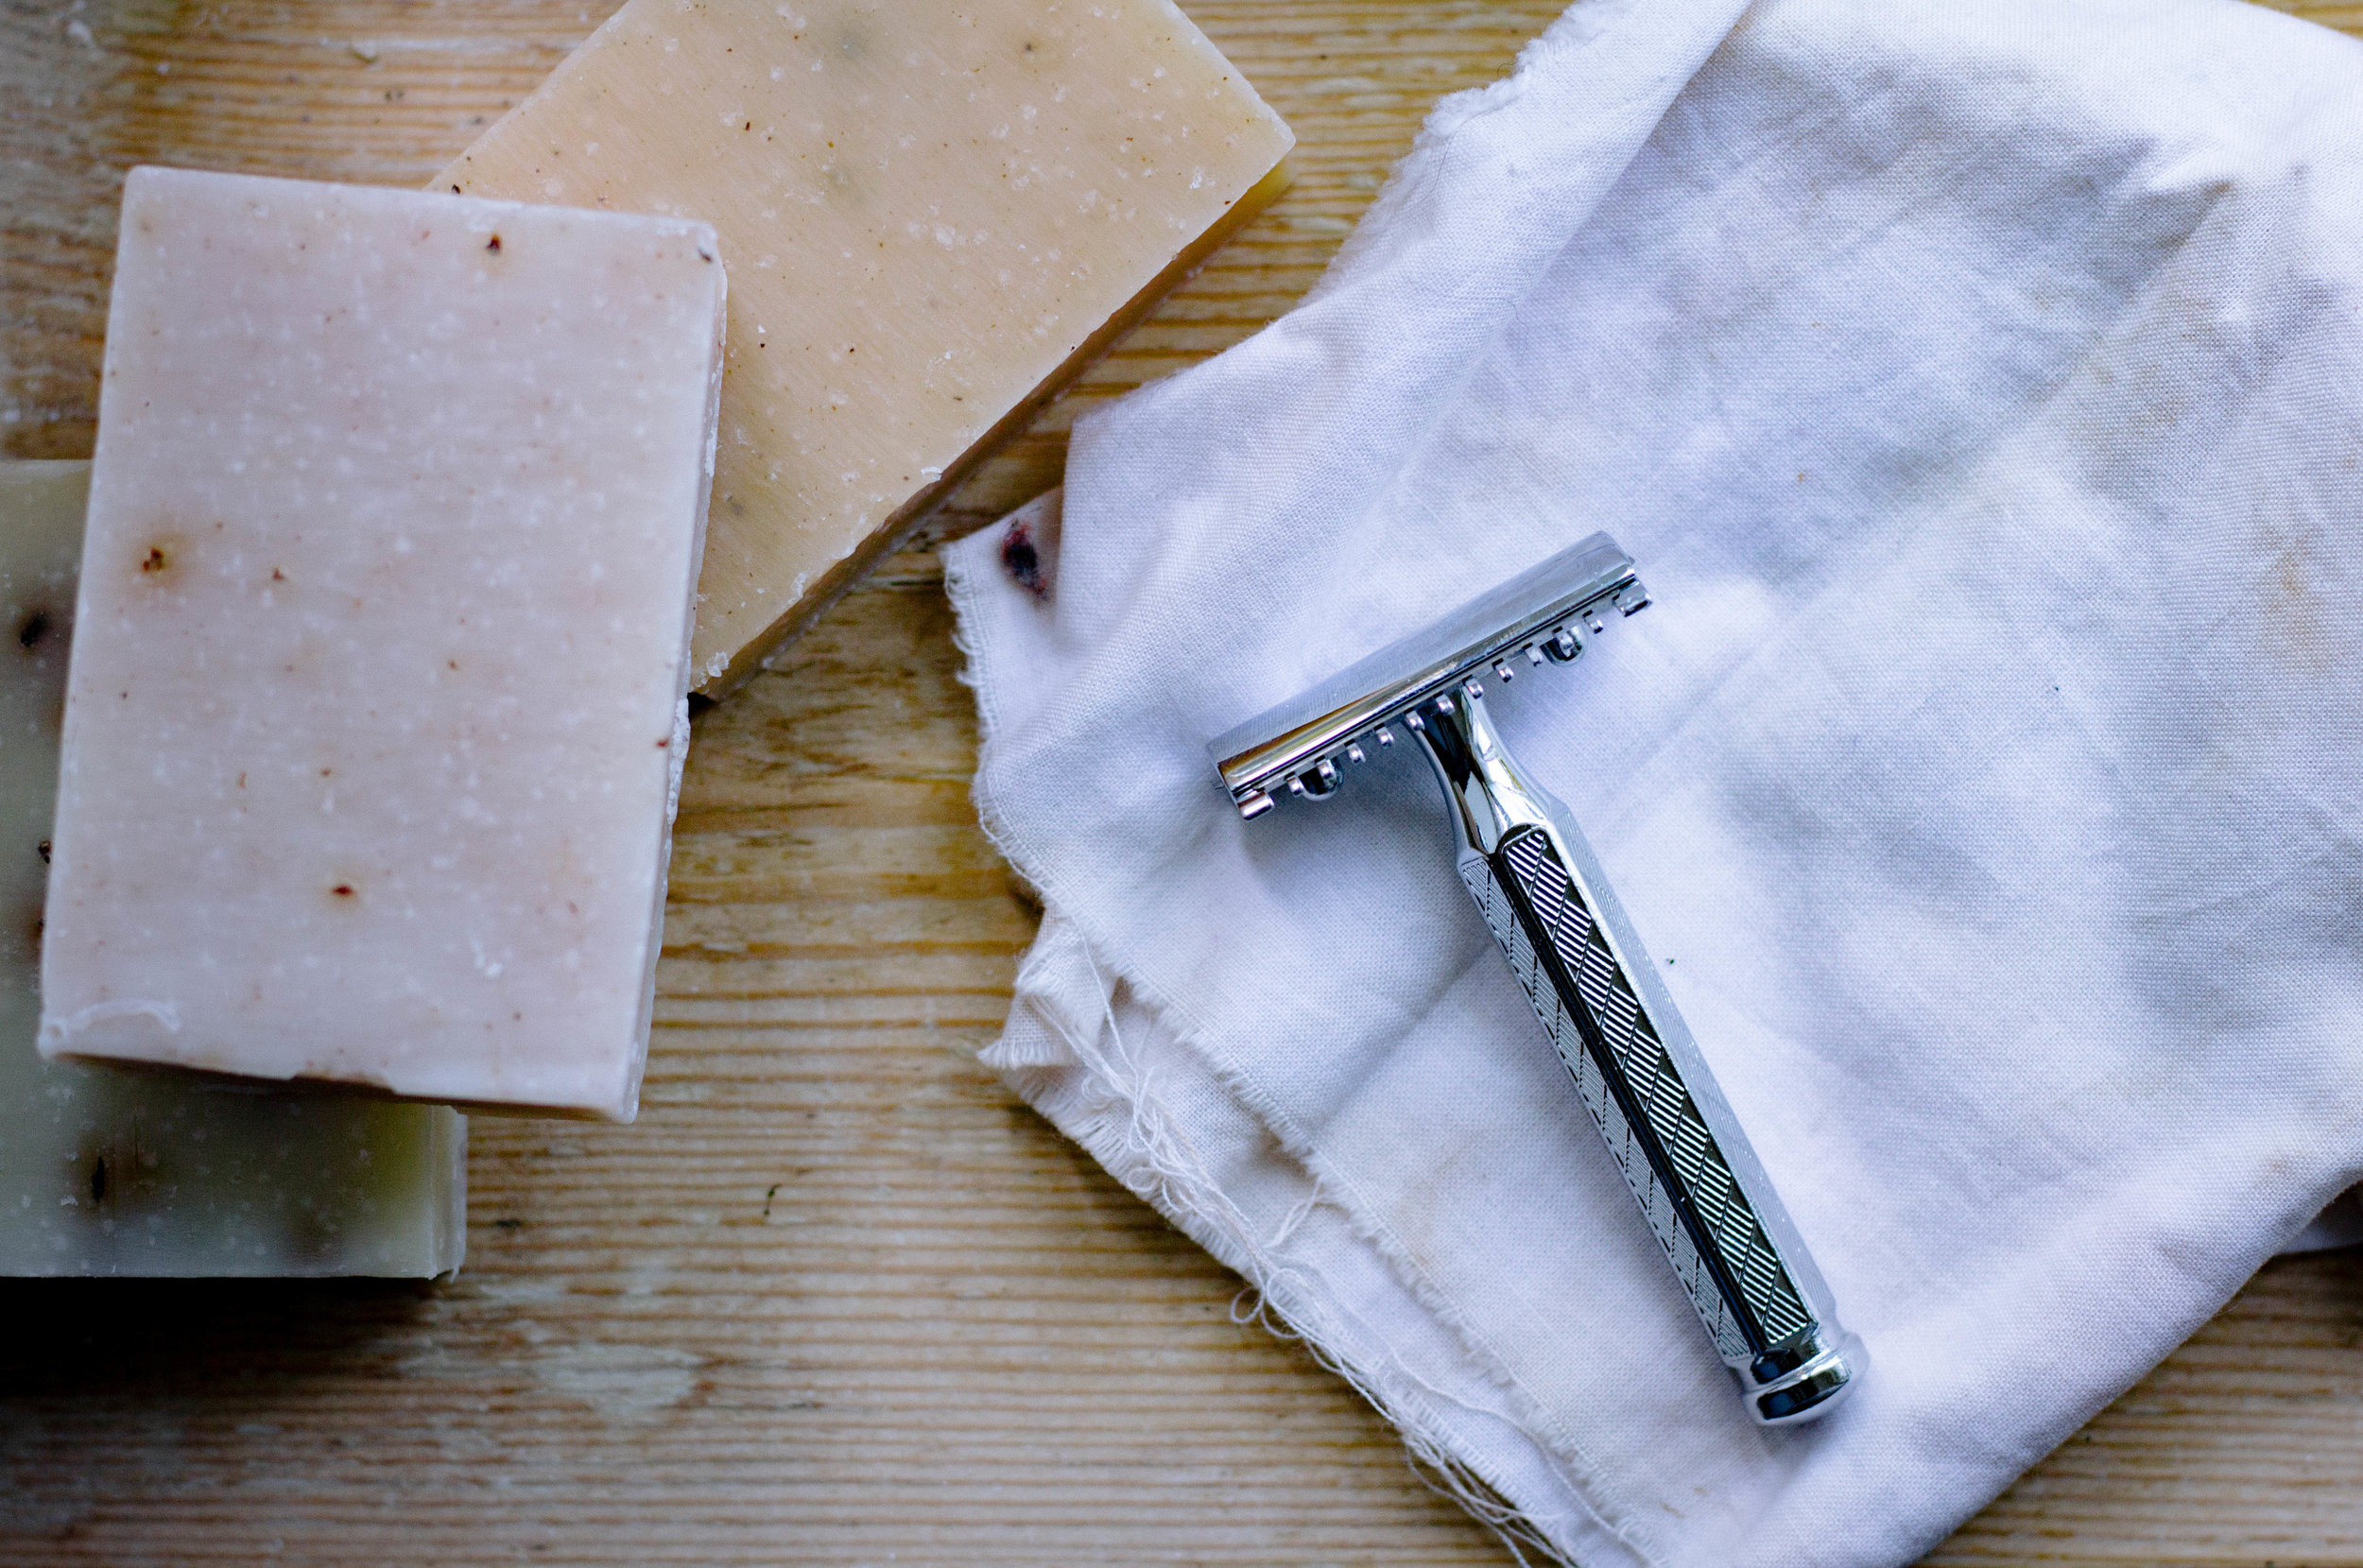 Switching from a disposable razor to a stainless steel razor | Eco-friendly living by The Foraged Life